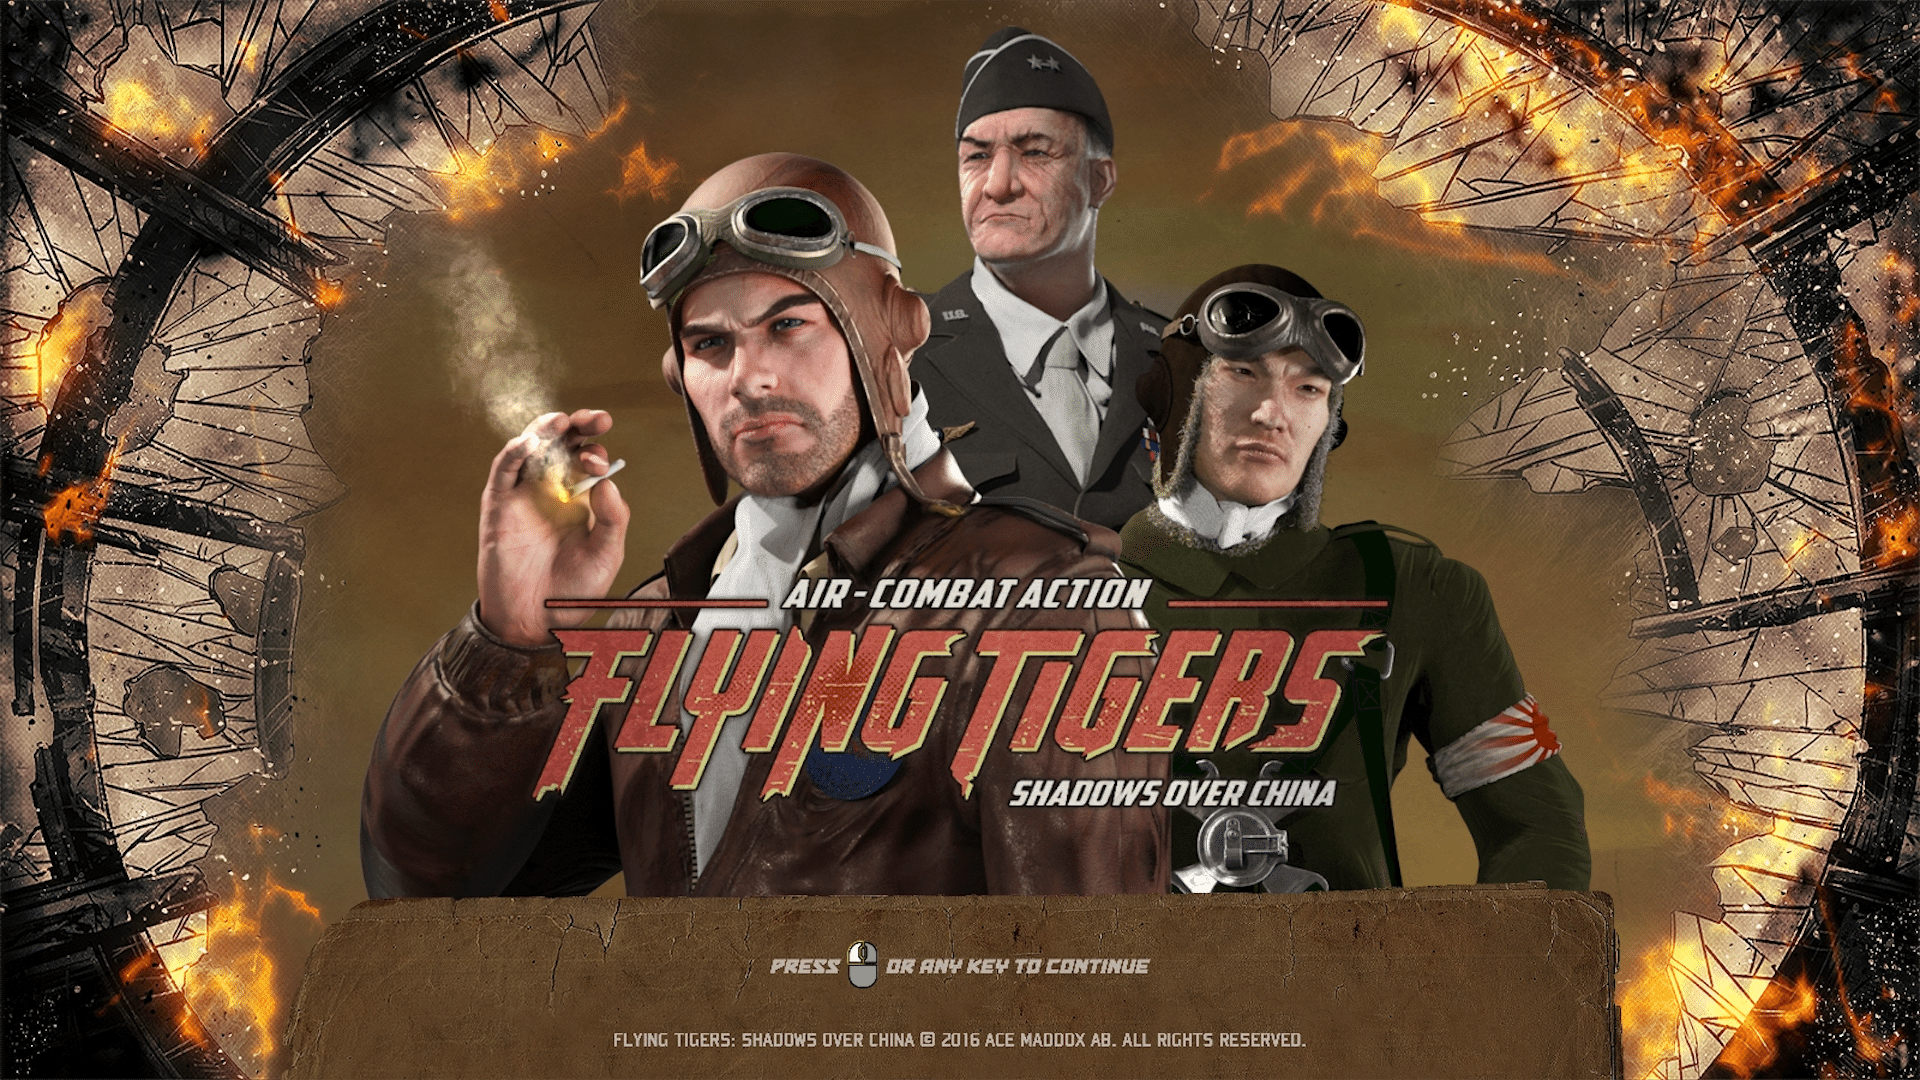 Flying Tigers: Shadows Over China Steam Cockpit/Campaign Update Now Live